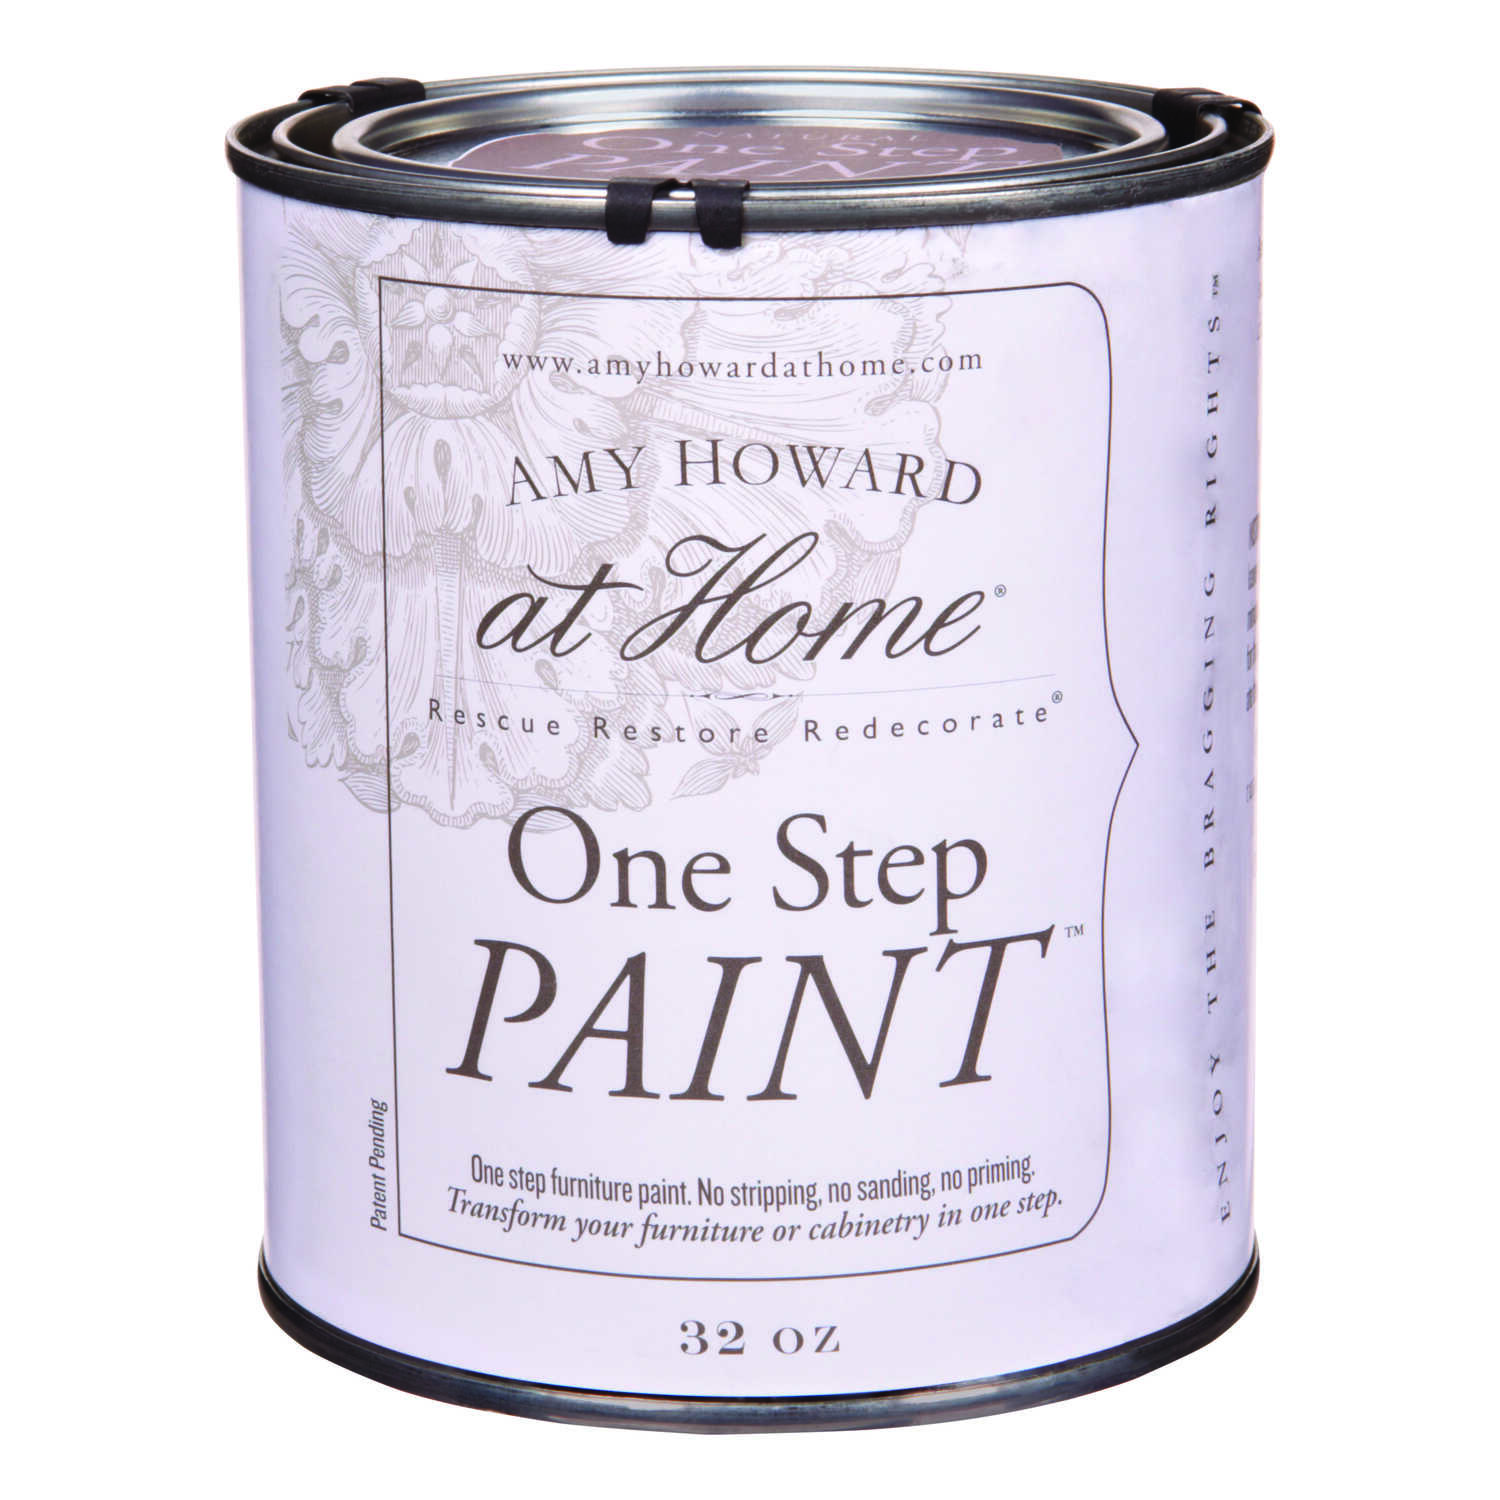 Amy Howard at Home  Flat Chalky Finish  Windsor  32 oz. One Step Paint